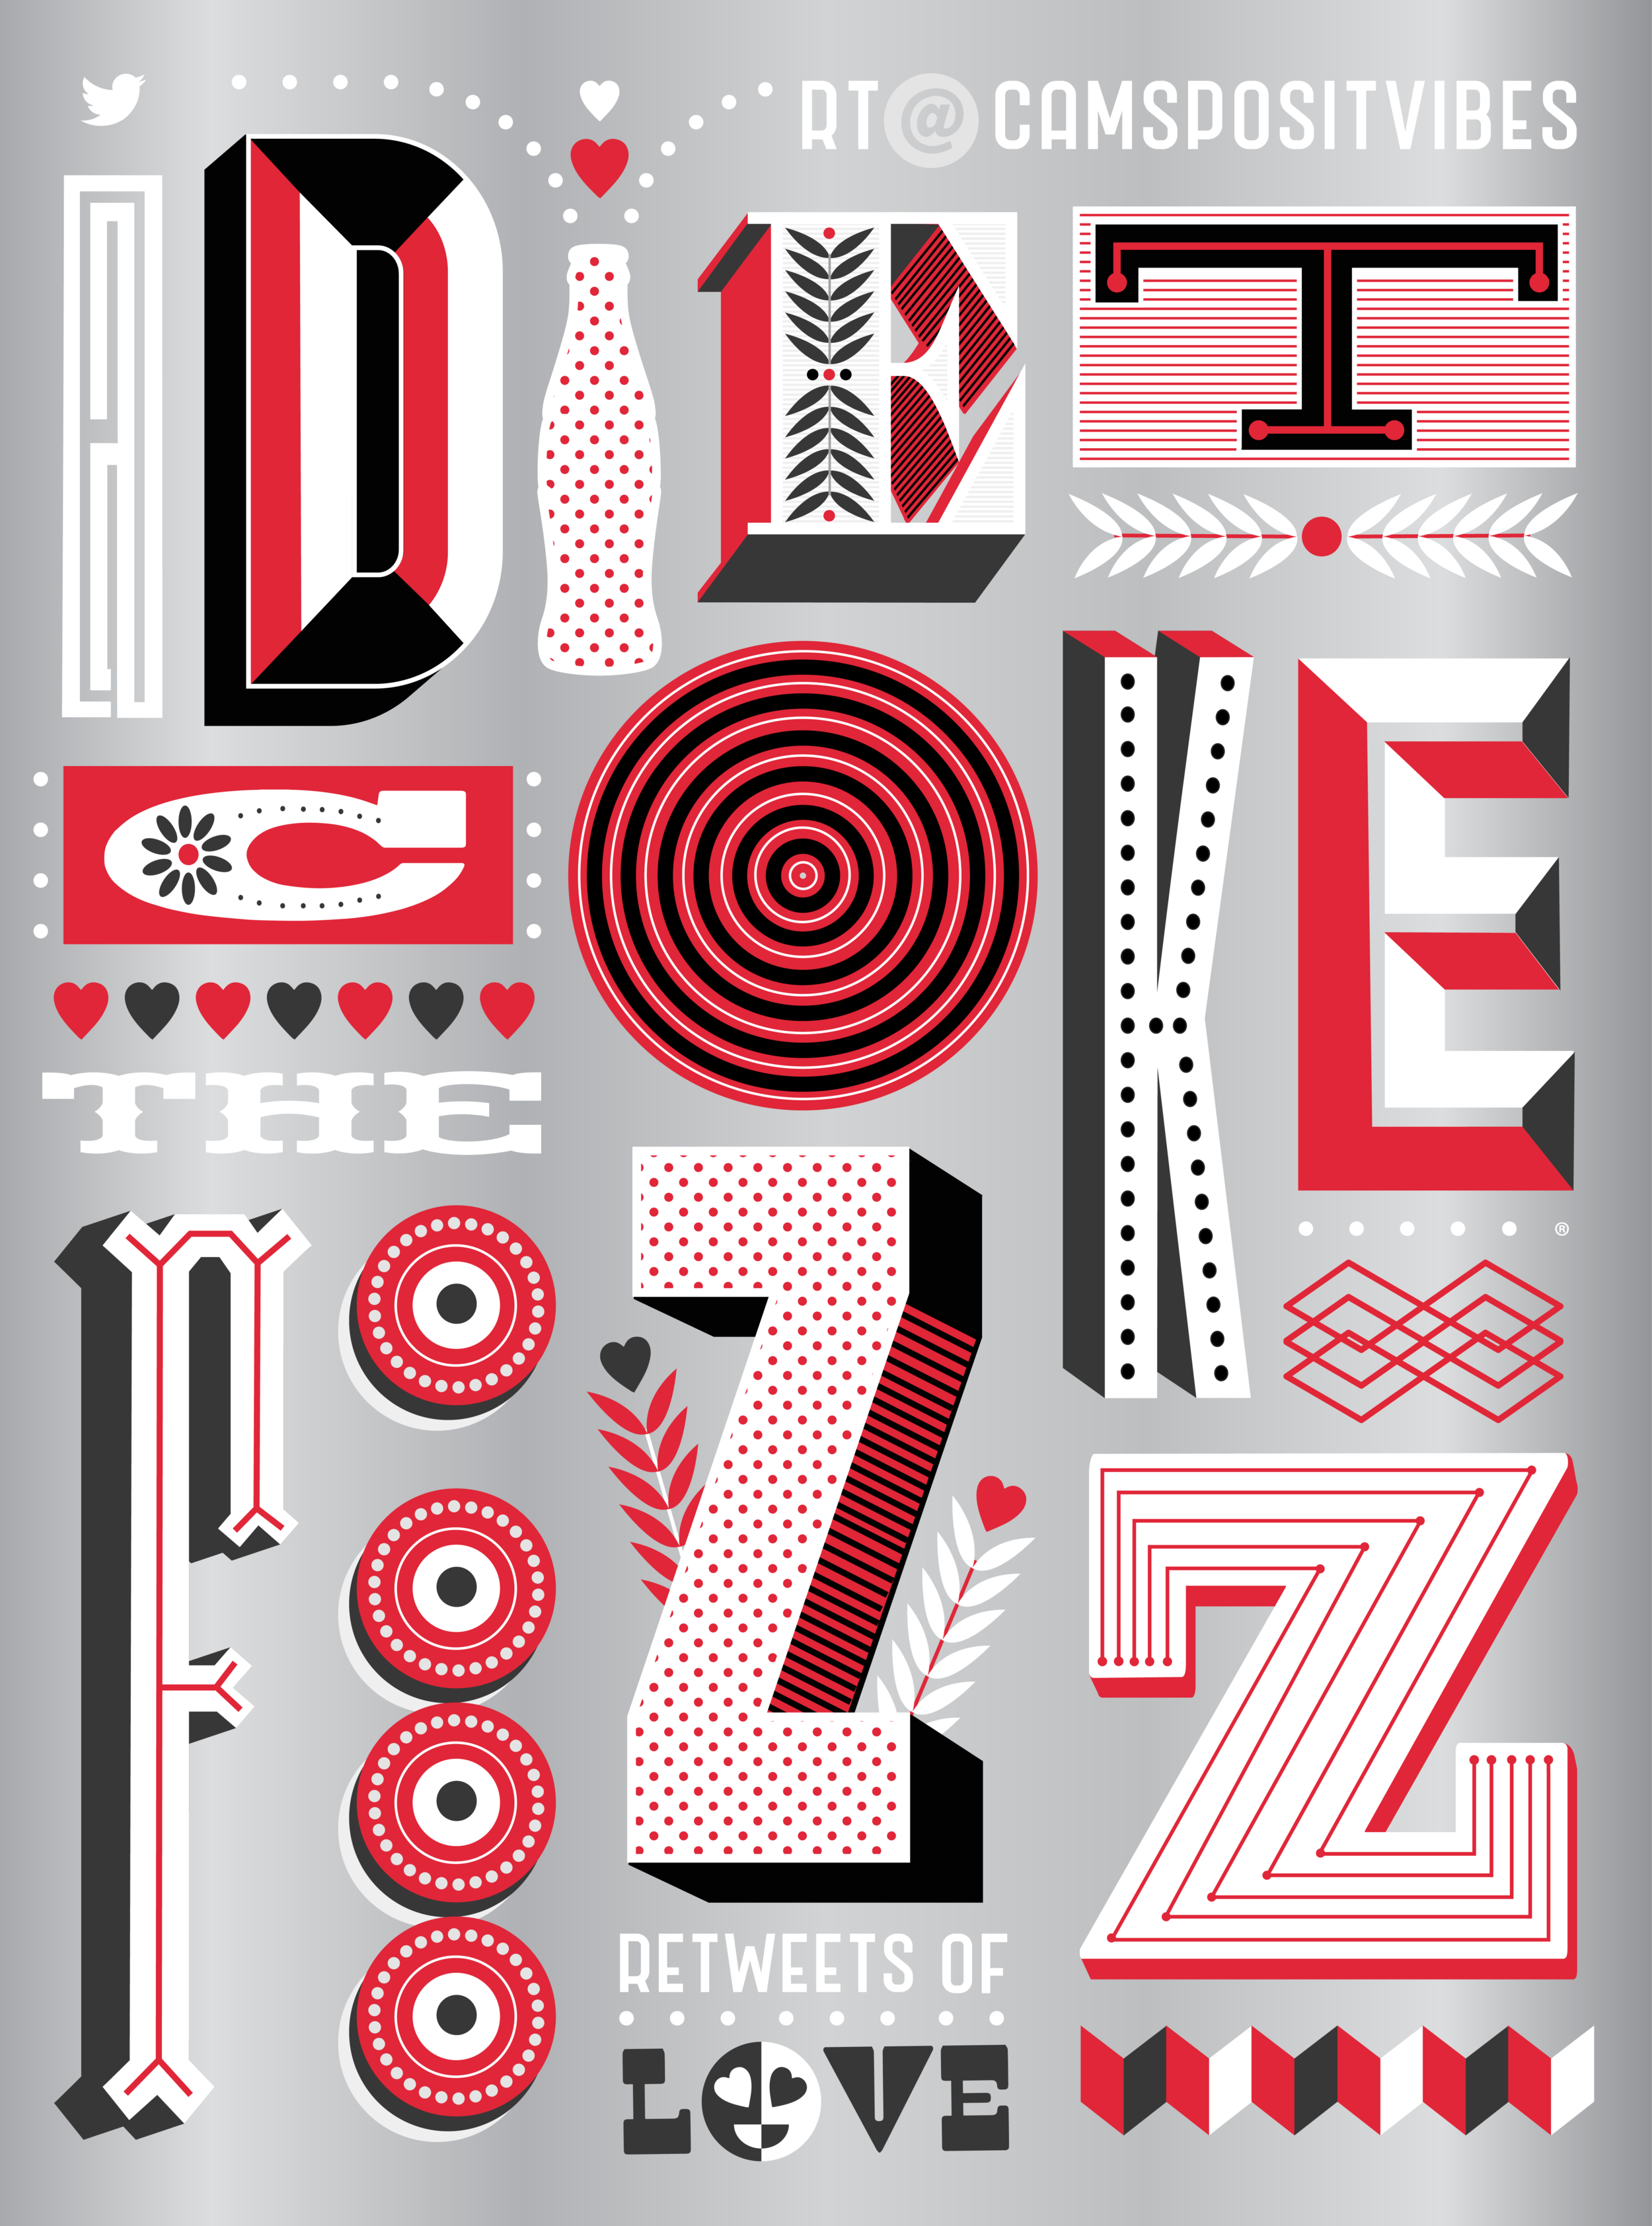 10.26.15_®_Altered_POSTER THE FIZZ DC_POSTER_GEMMA_10.13 copy-01.png